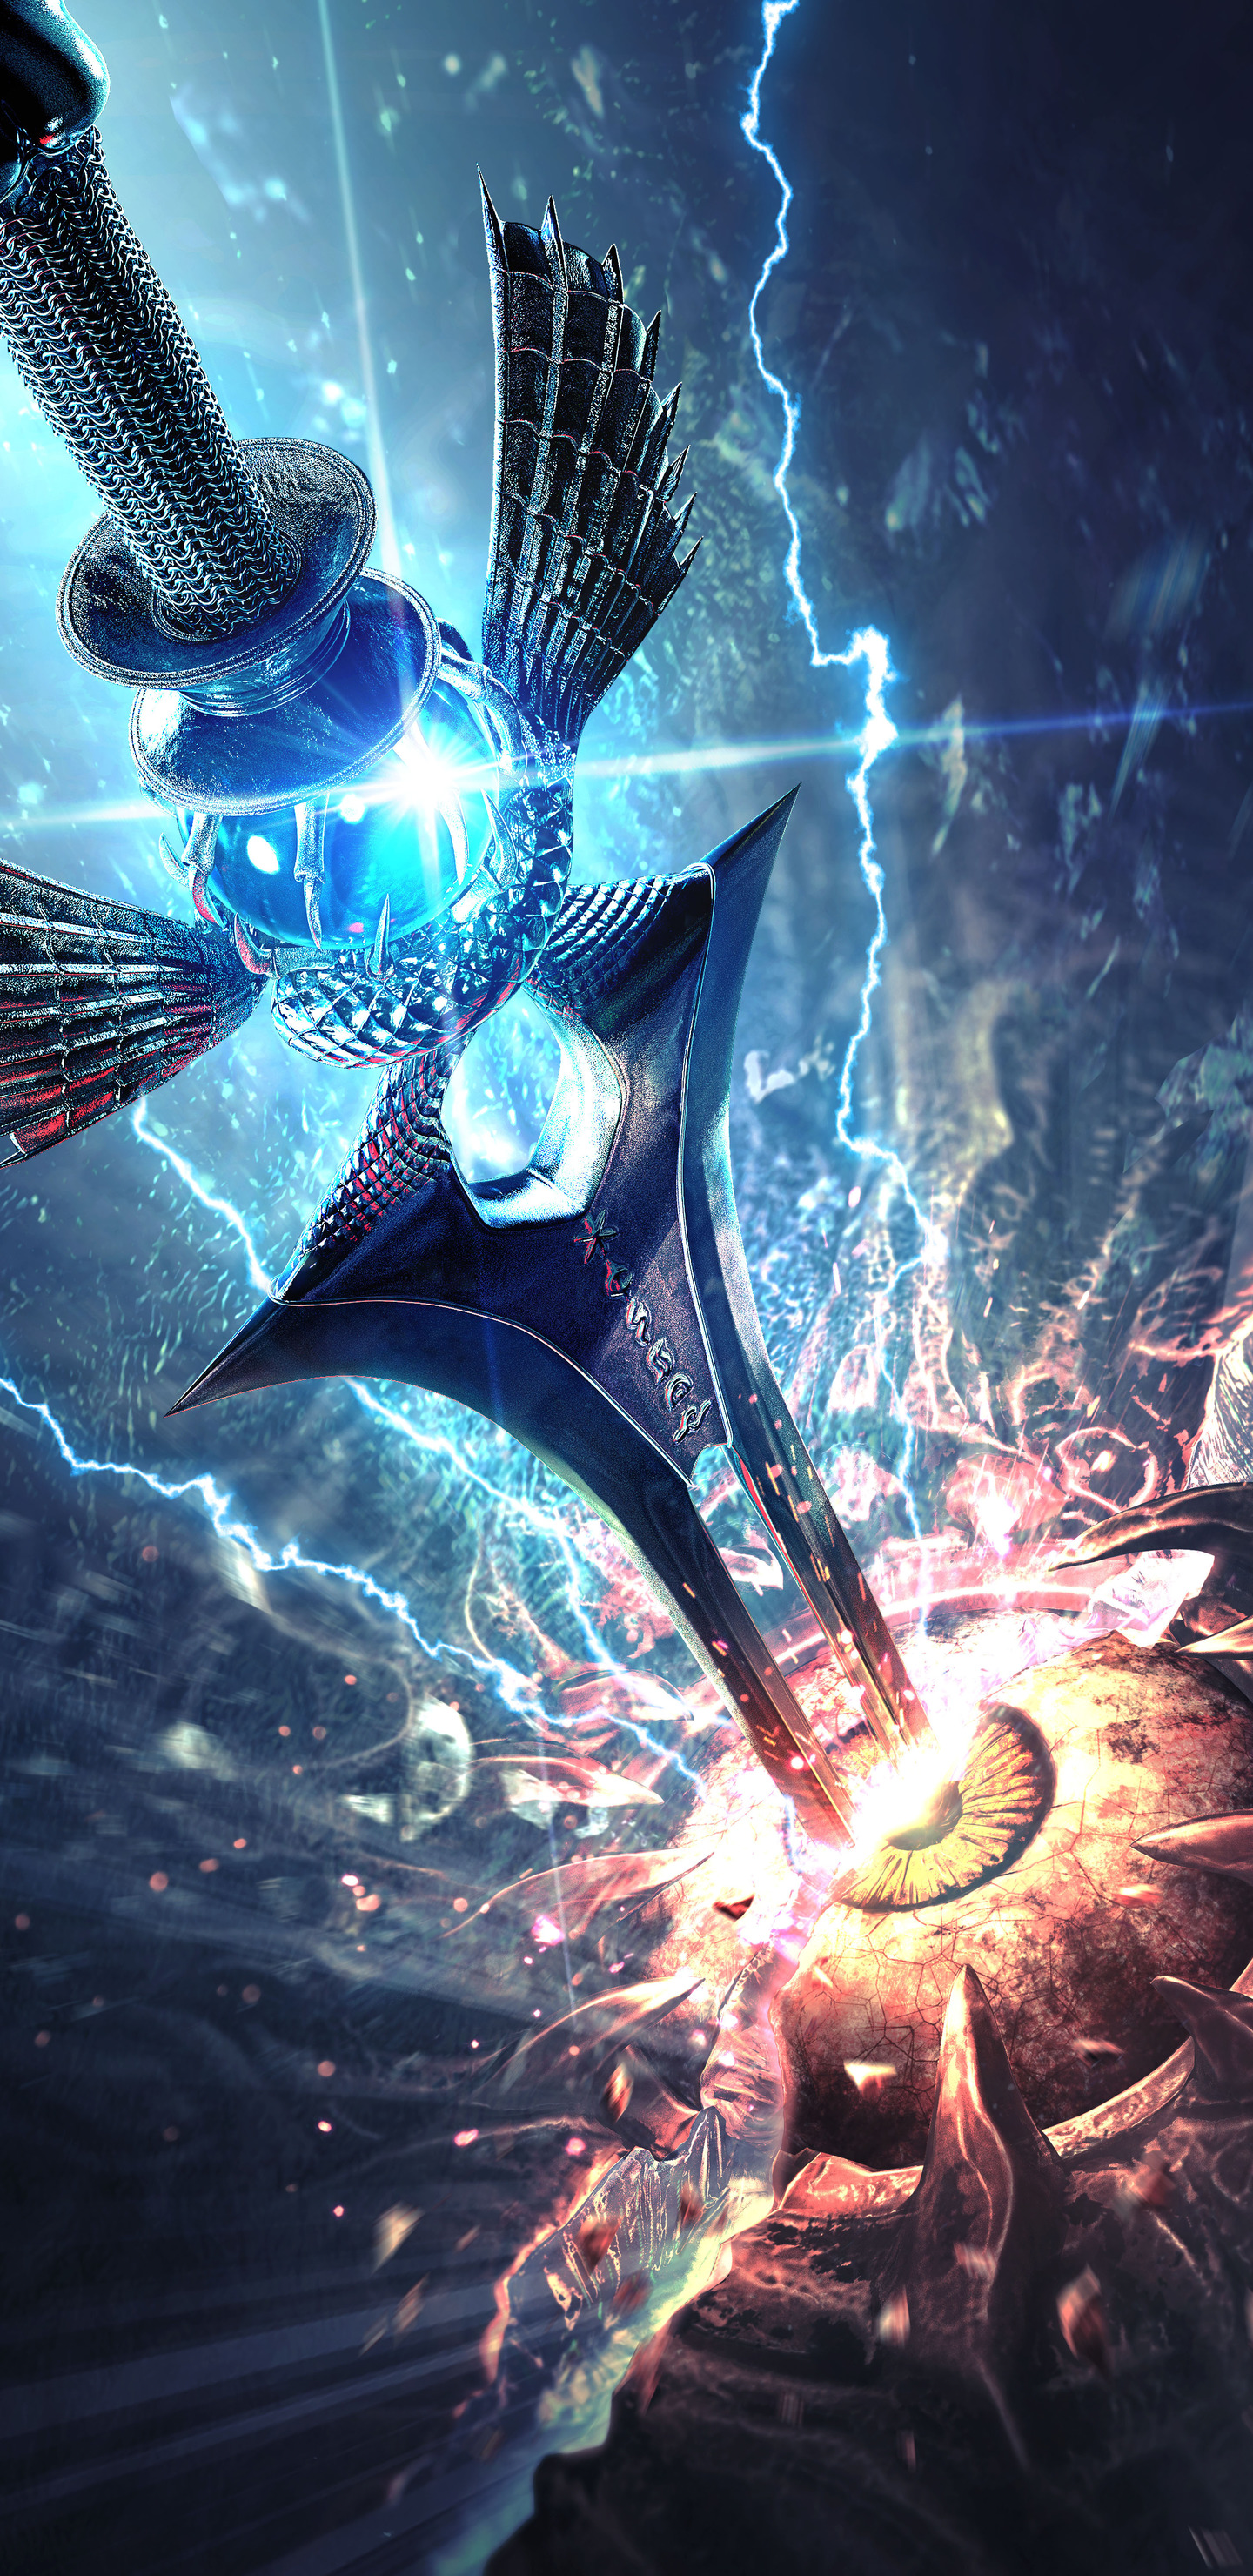 X Soulcalibur Game Poster Samsung Galaxy Note S